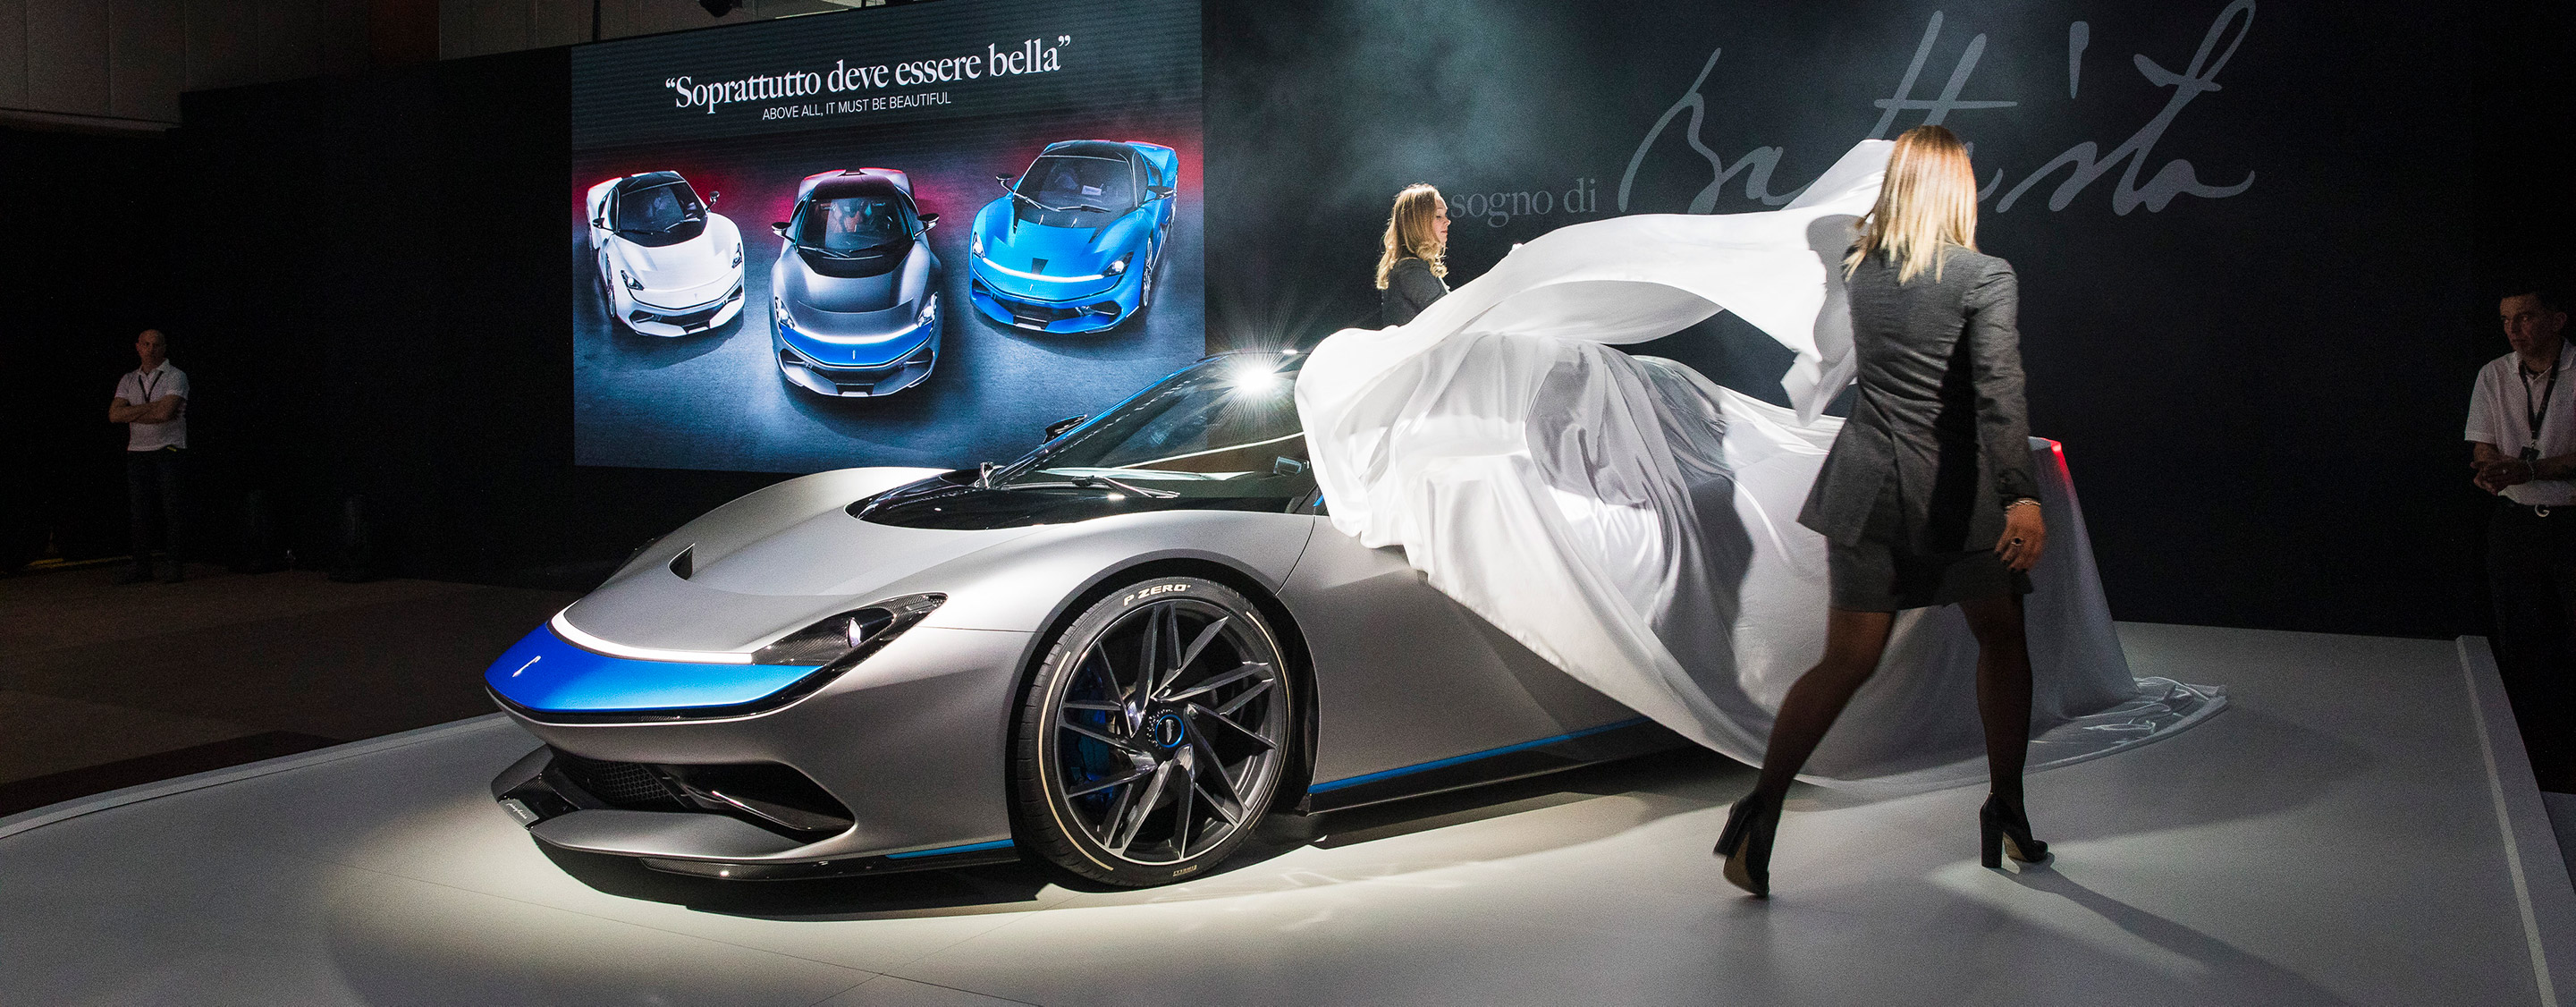 TrackWorthy - Pininfarina Battista at 2019 Geneva International Motor Show (1)